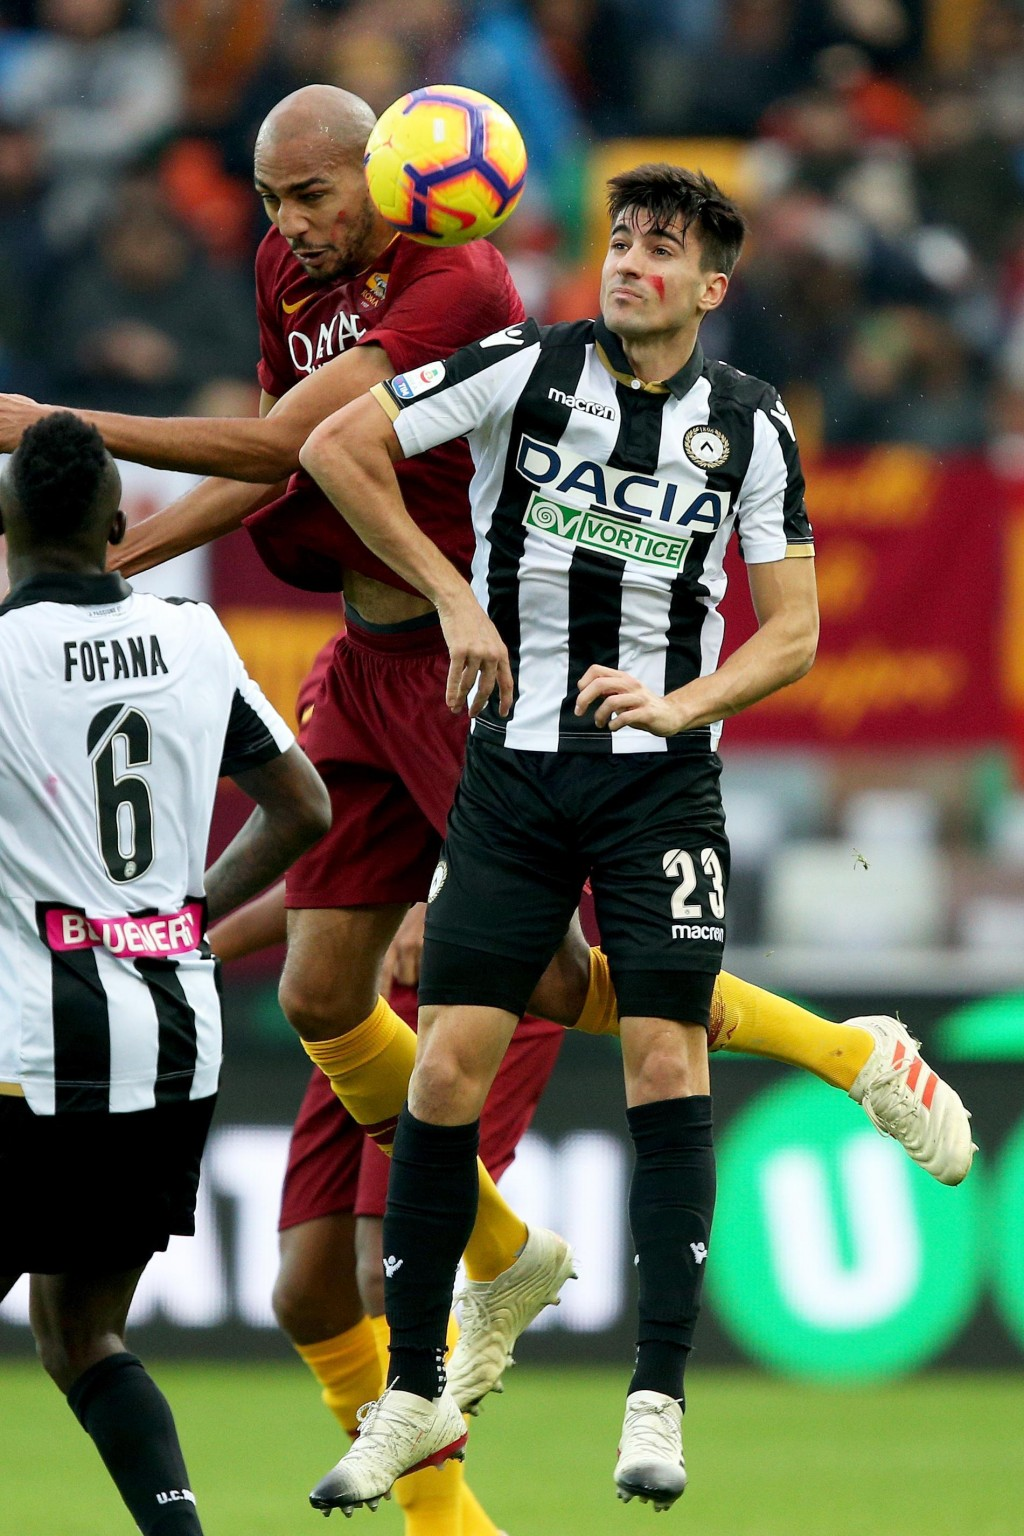 Udinese's Ignacio Pussetto, right, and Roma's Steven Nzonzi  jump for the ball during the Serie A soccer match between Udinese and Roma at the Friuli ...